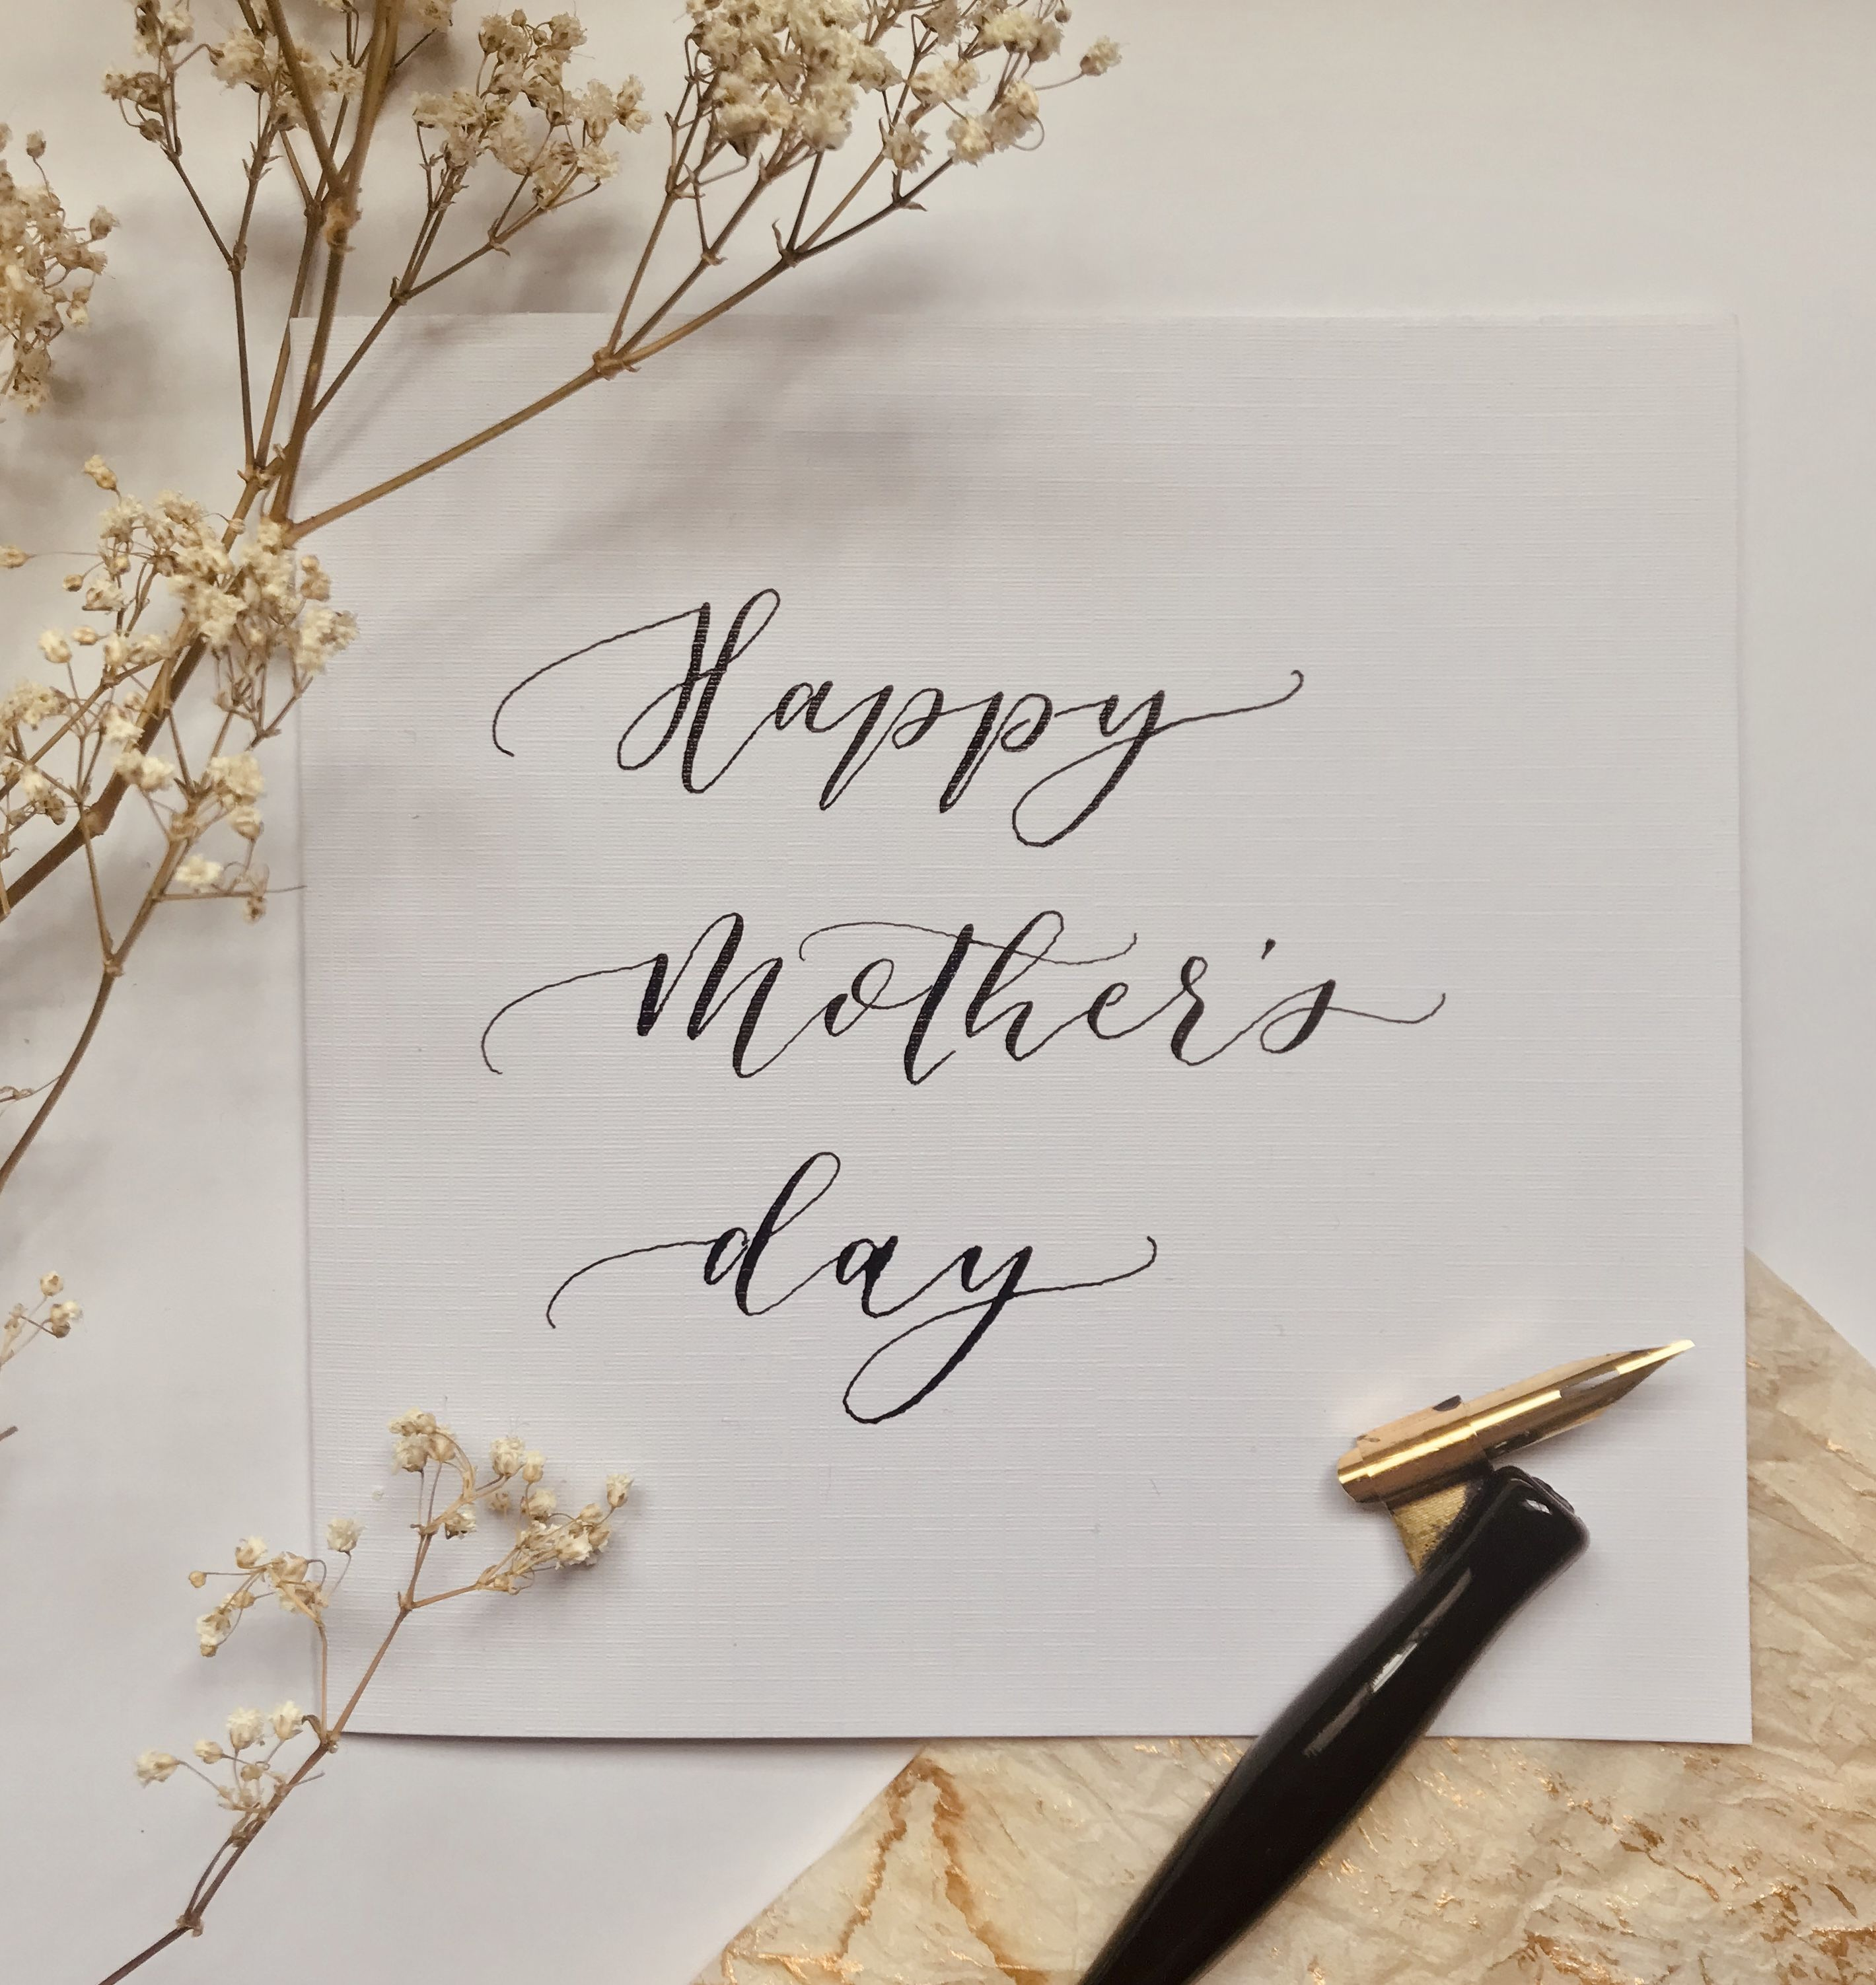 Calligraphy Happy Mother S Day Hand Written Card Hand Made Crafts Mothers Day Gifts Elegant Card Happy Mother S Day Calligraphy Elegant Cards Happy Mothers Day